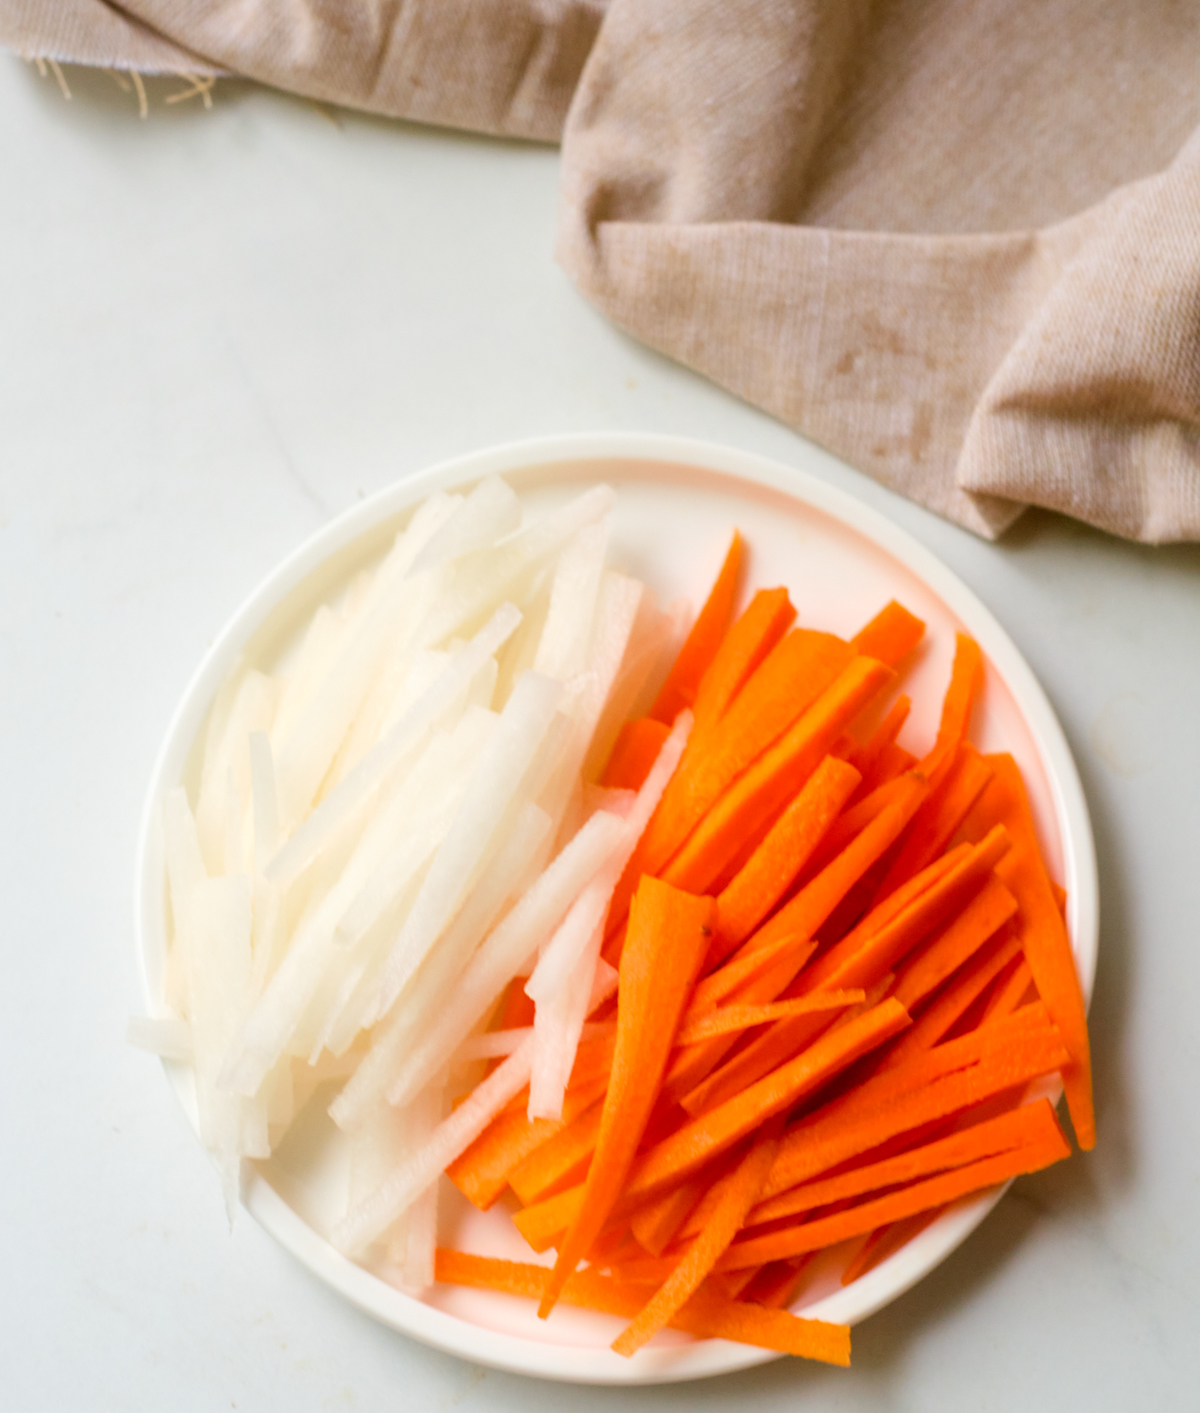 julienned carrots and daikon